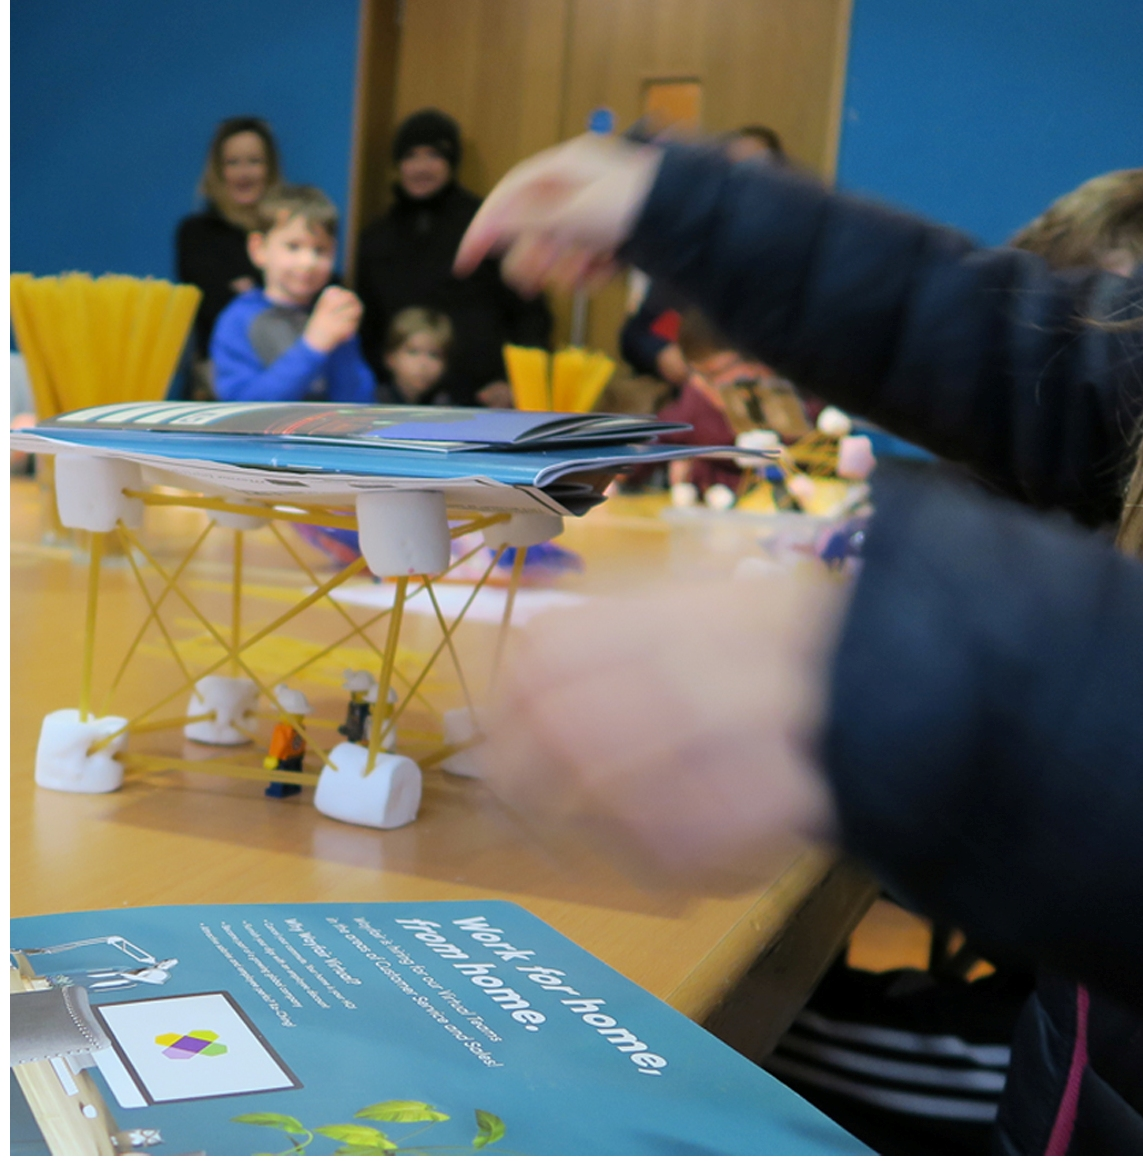 The Marine Institute, SmartBay, Galway Atlantaquaria and Galway City Museum hosted a fun 'Pasta Pressure' using pasta and marshmallows to demonstrate engineering at the Engineering workshop_photo Galway Atlantaquaria